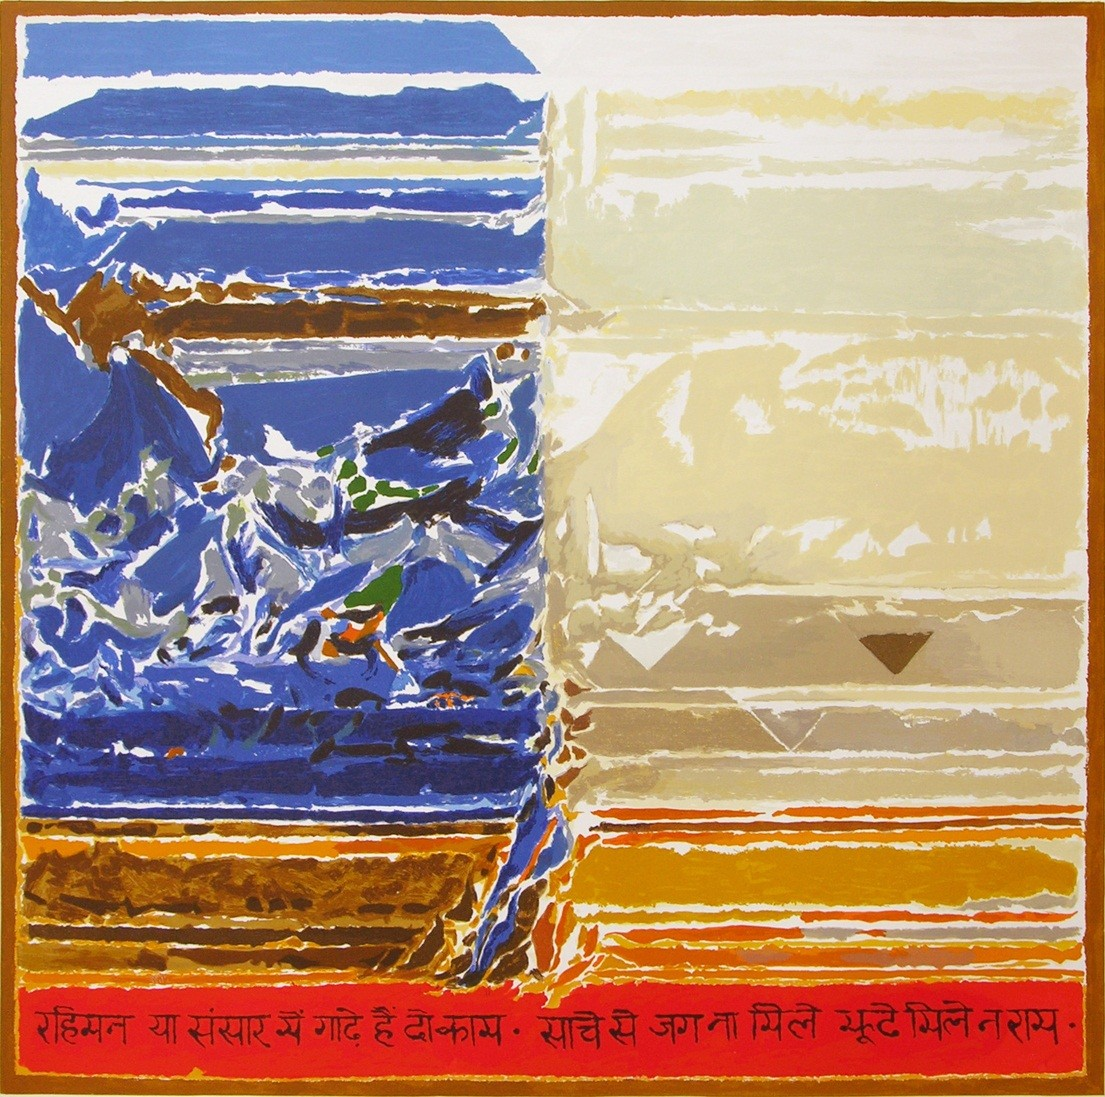 Satya Asatya by S H Raza, Abstract Serigraph, Serigraph on Paper, Beige color